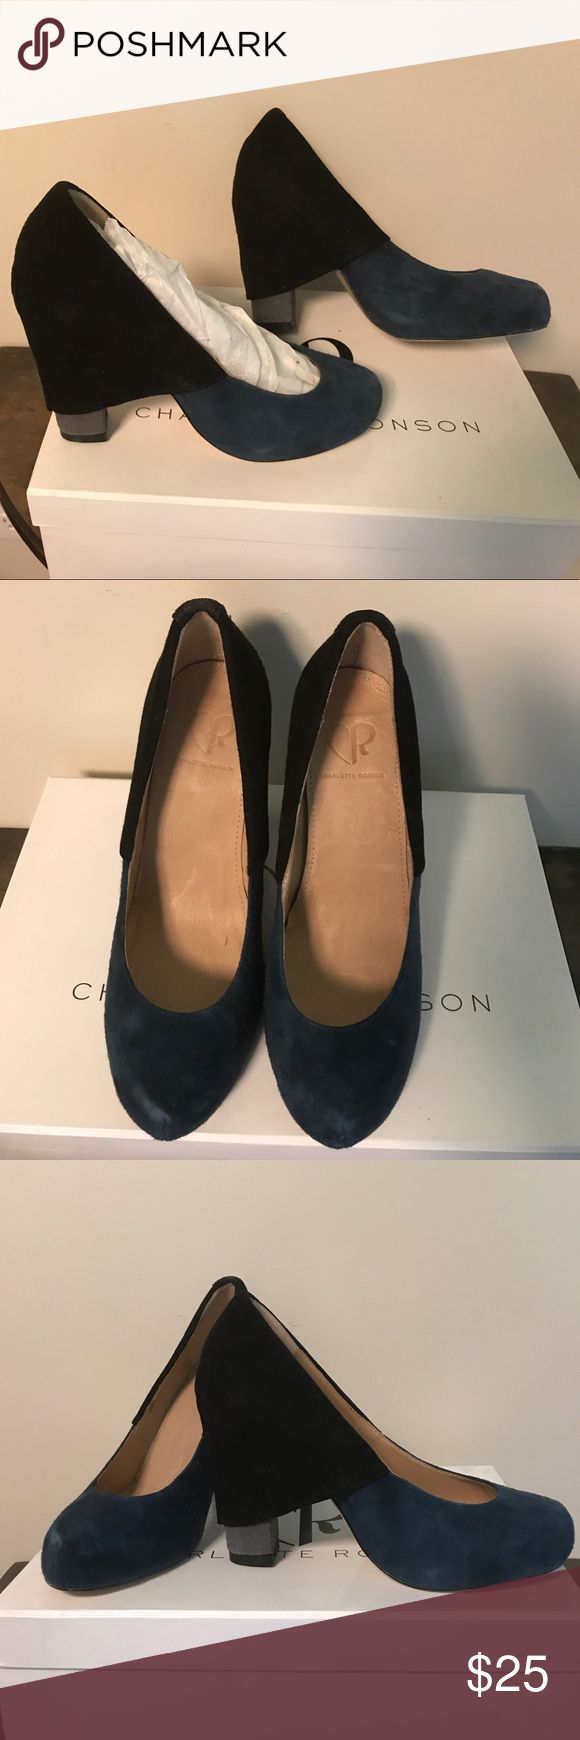 Charlotte Ronson Heels Navy and Black Suede heels. Only worn indoors once. Eye catching!! Smoke free, pet free home!! Charlotte Ronson Shoes Heels